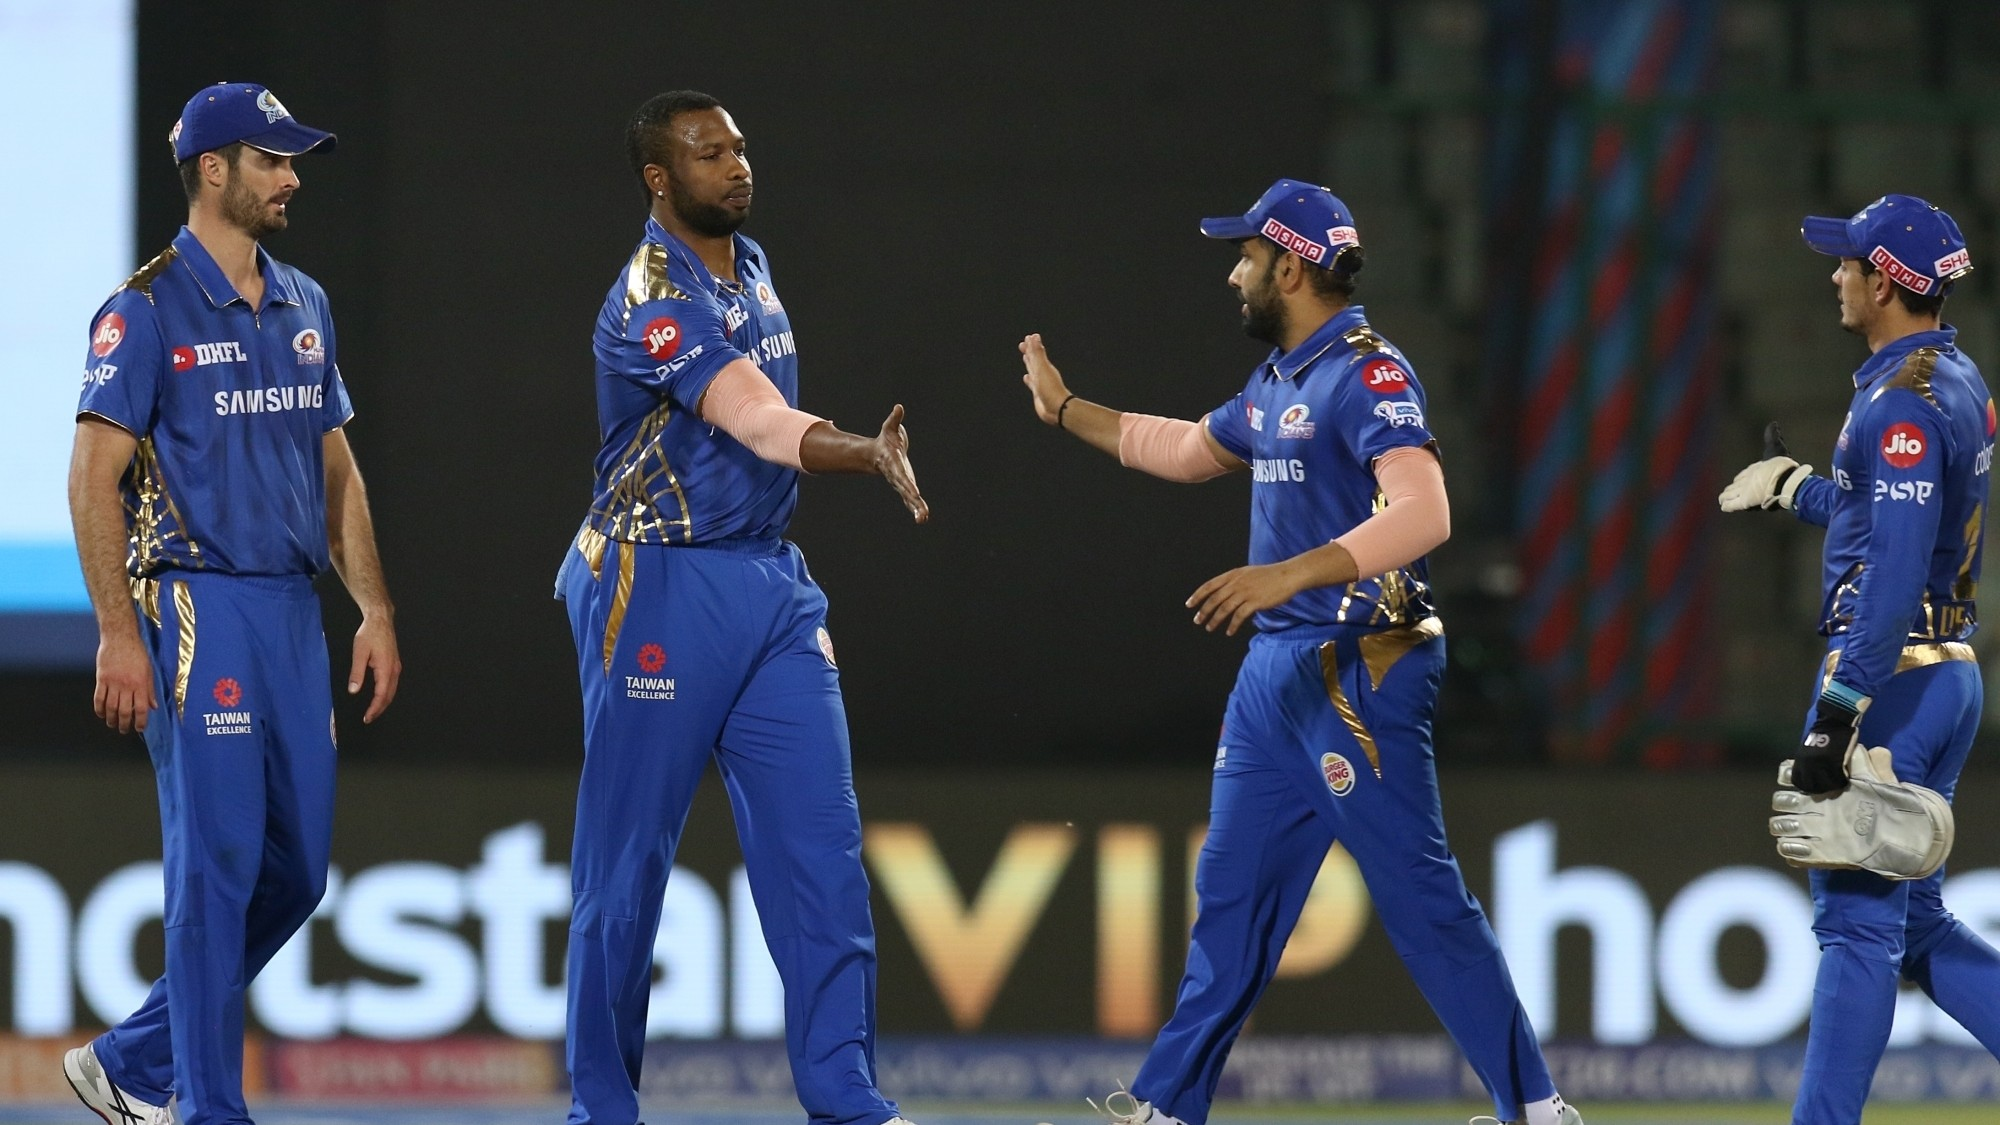 IPL 2019: MI to give 4-day break to World Cup-bound players before busy schedule as per Reports